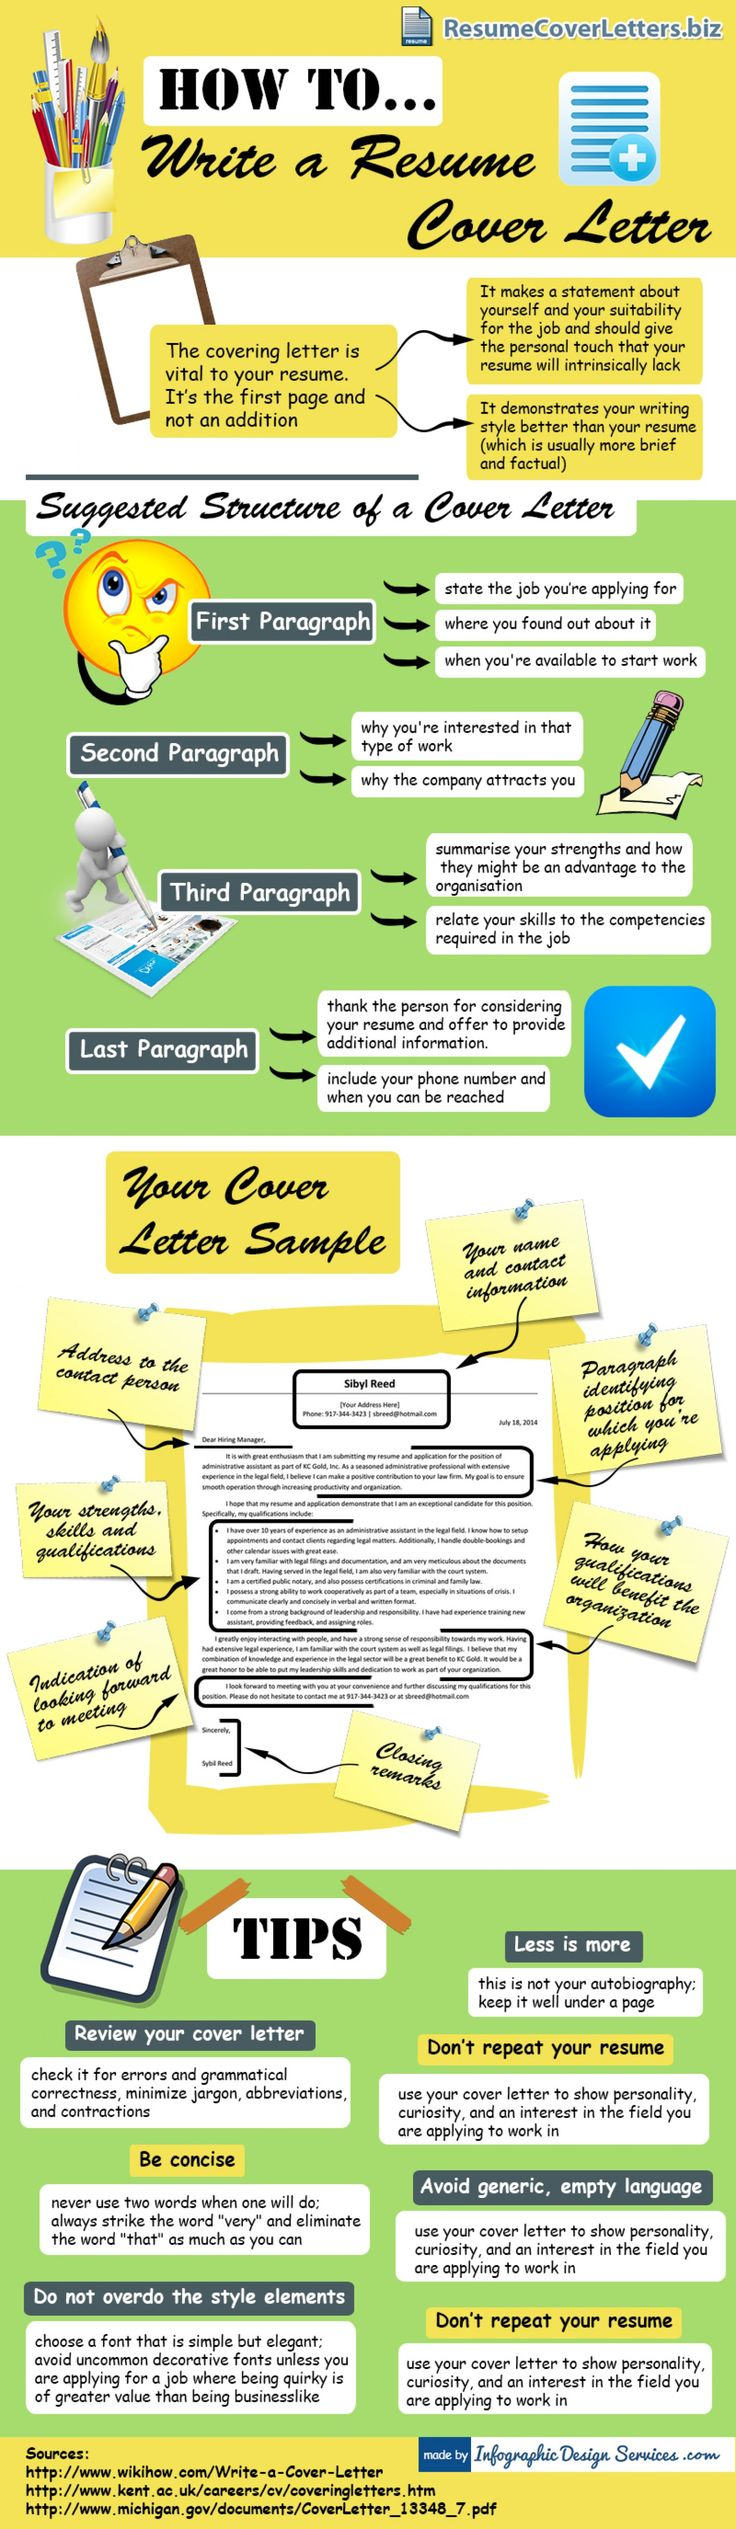 resume cover letter writing tips infographic - Write A Resume